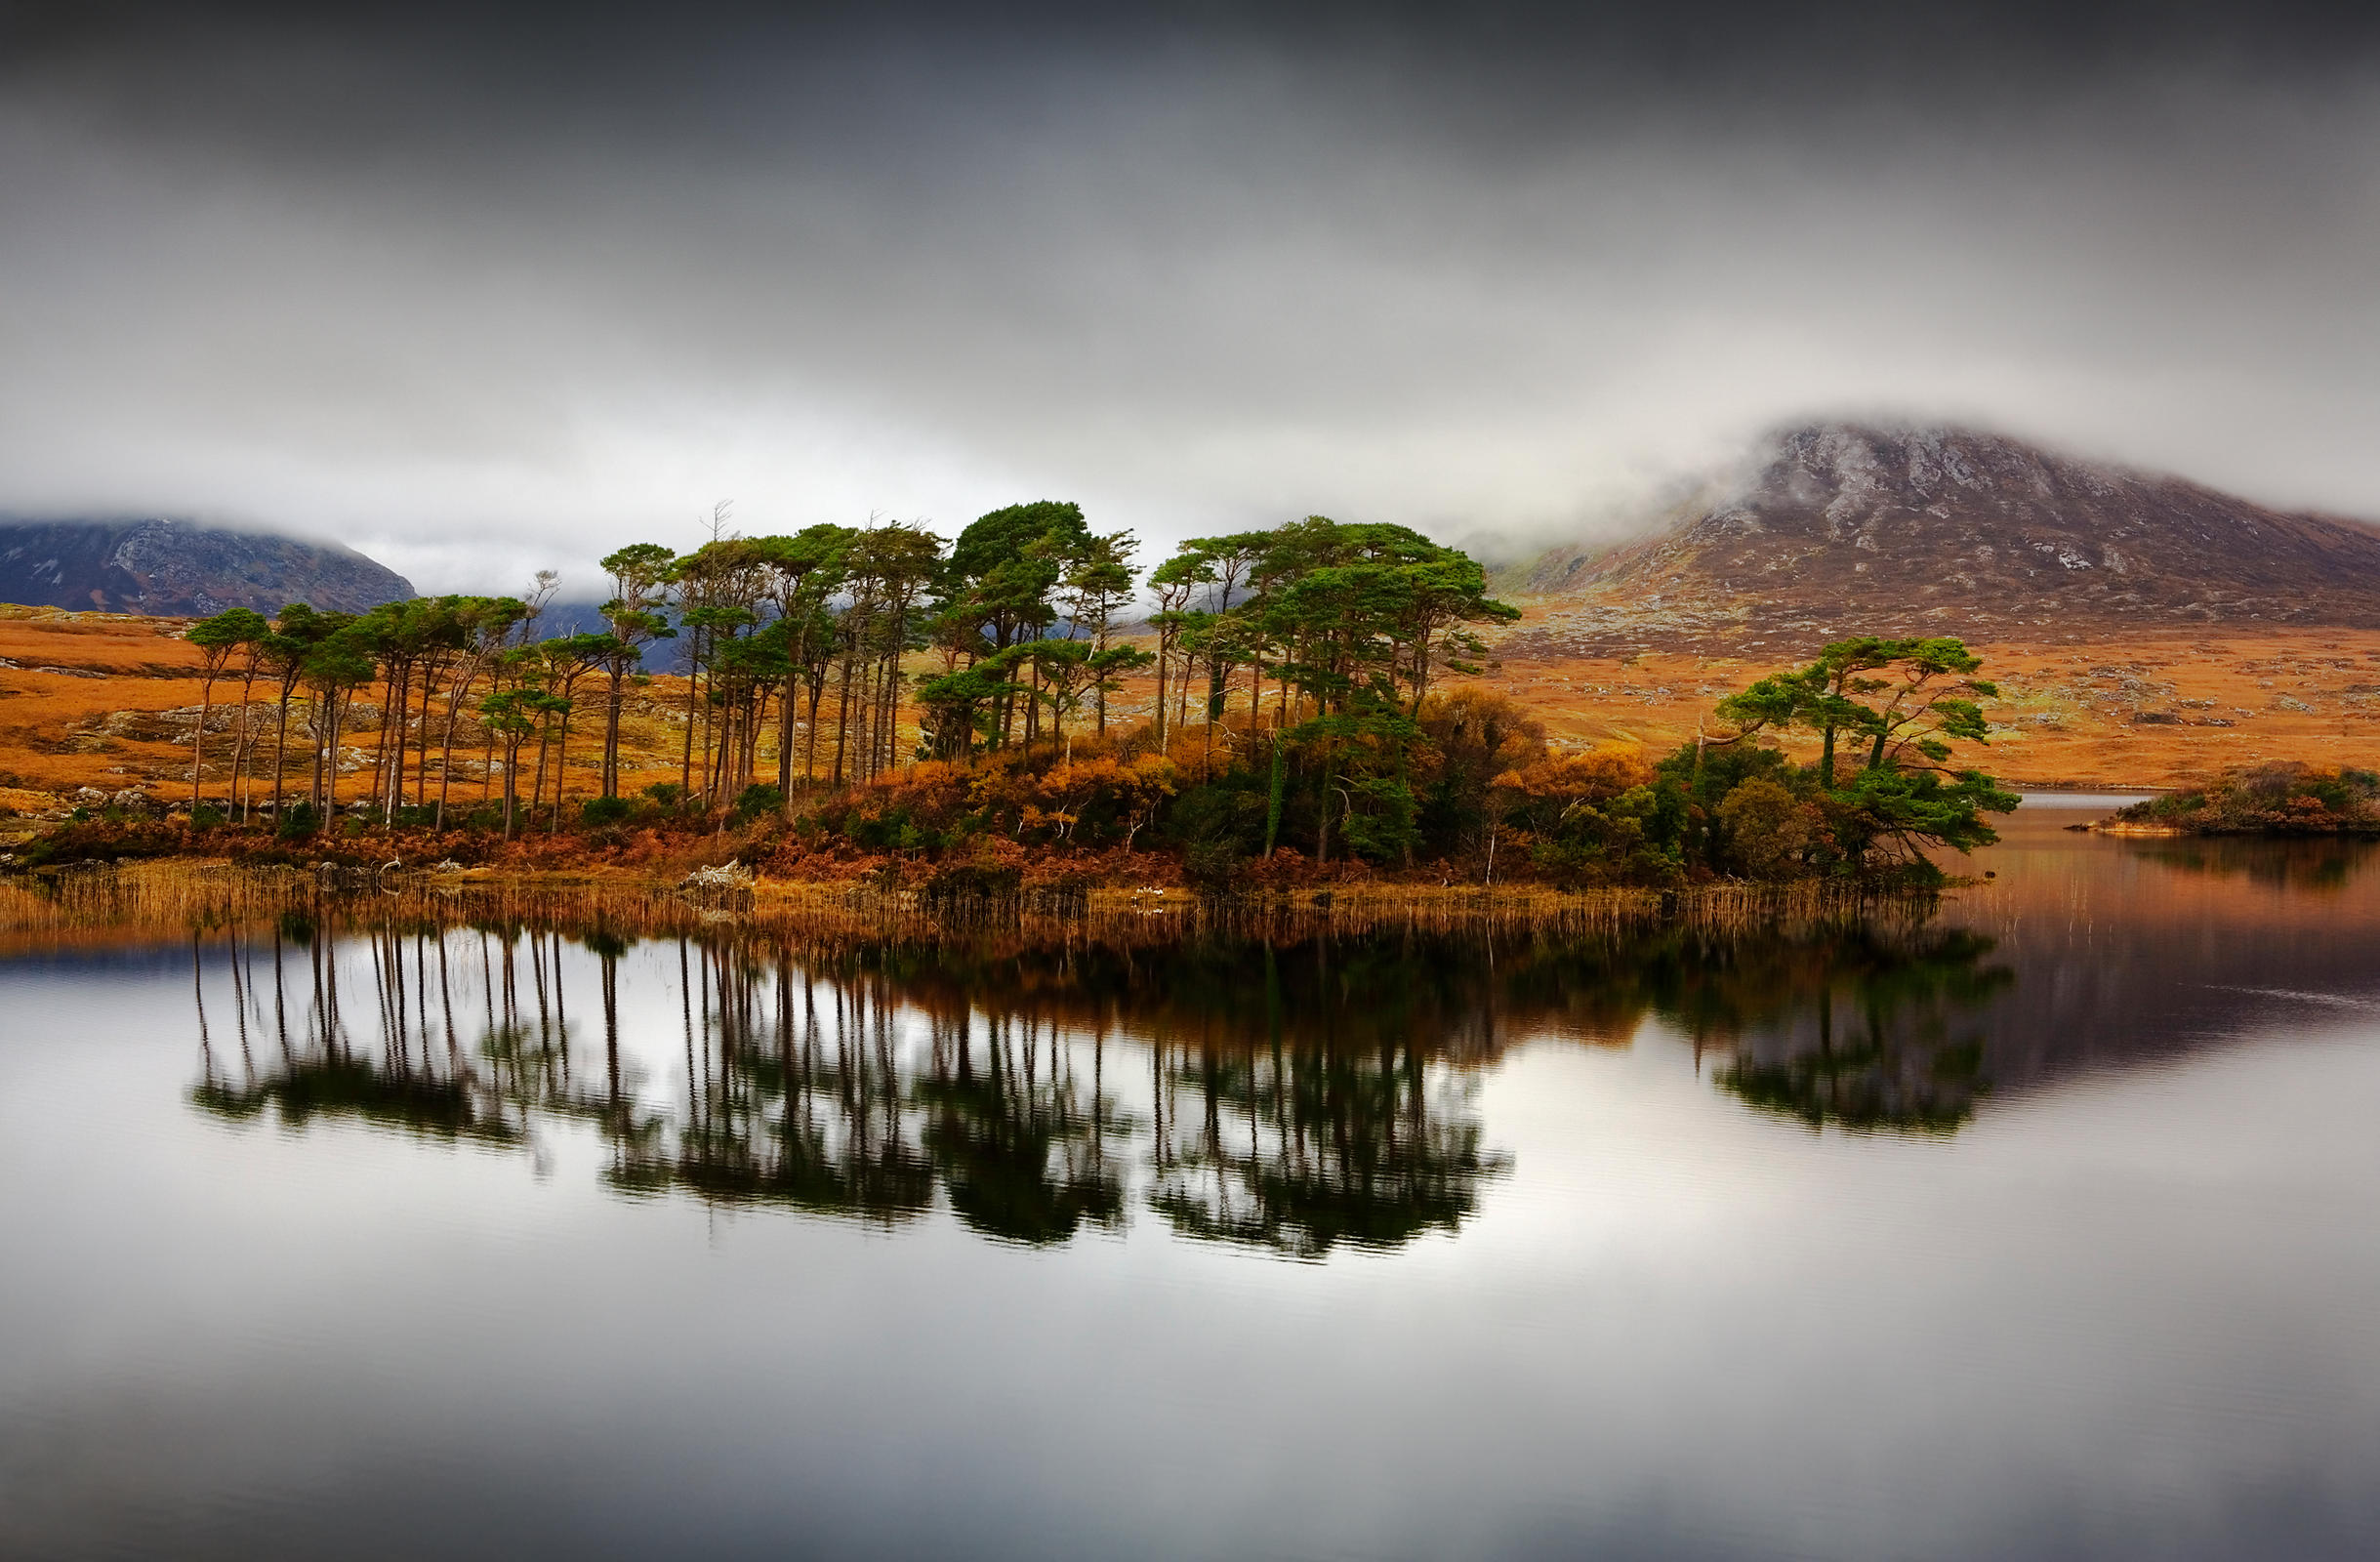 Lake in Connemara, County Galway, Ireland